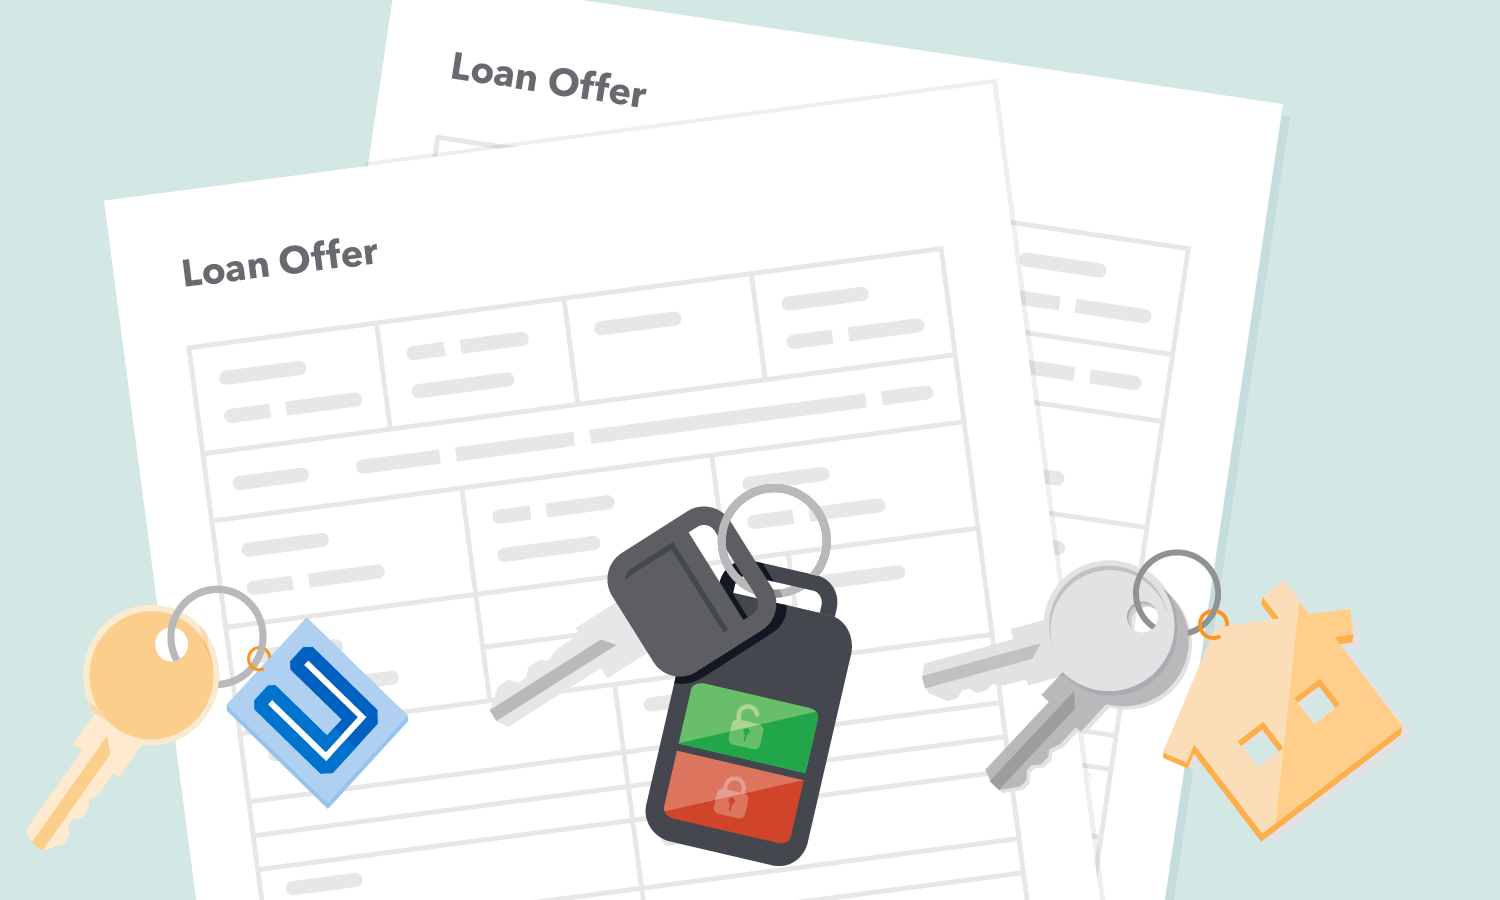 The Way to Apply for a Tiny Personal Loan Online